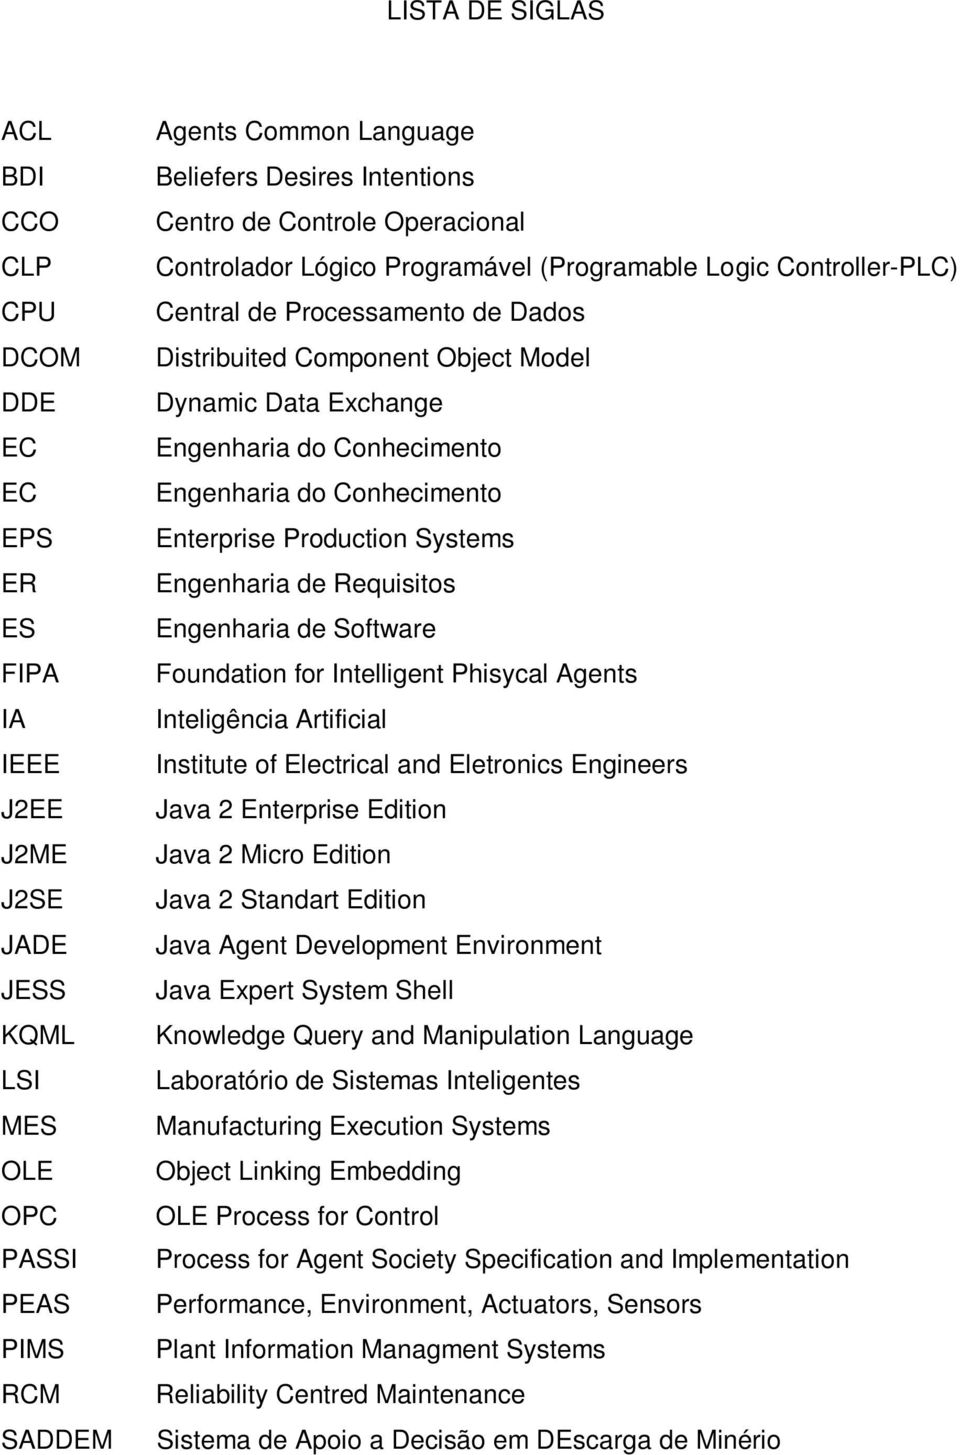 Engenharia do Conhecimento Engenharia do Conhecimento Enterprise Production Systems Engenharia de Requisitos Engenharia de Software Foundation for Intelligent Phisycal Agents Inteligência Artificial